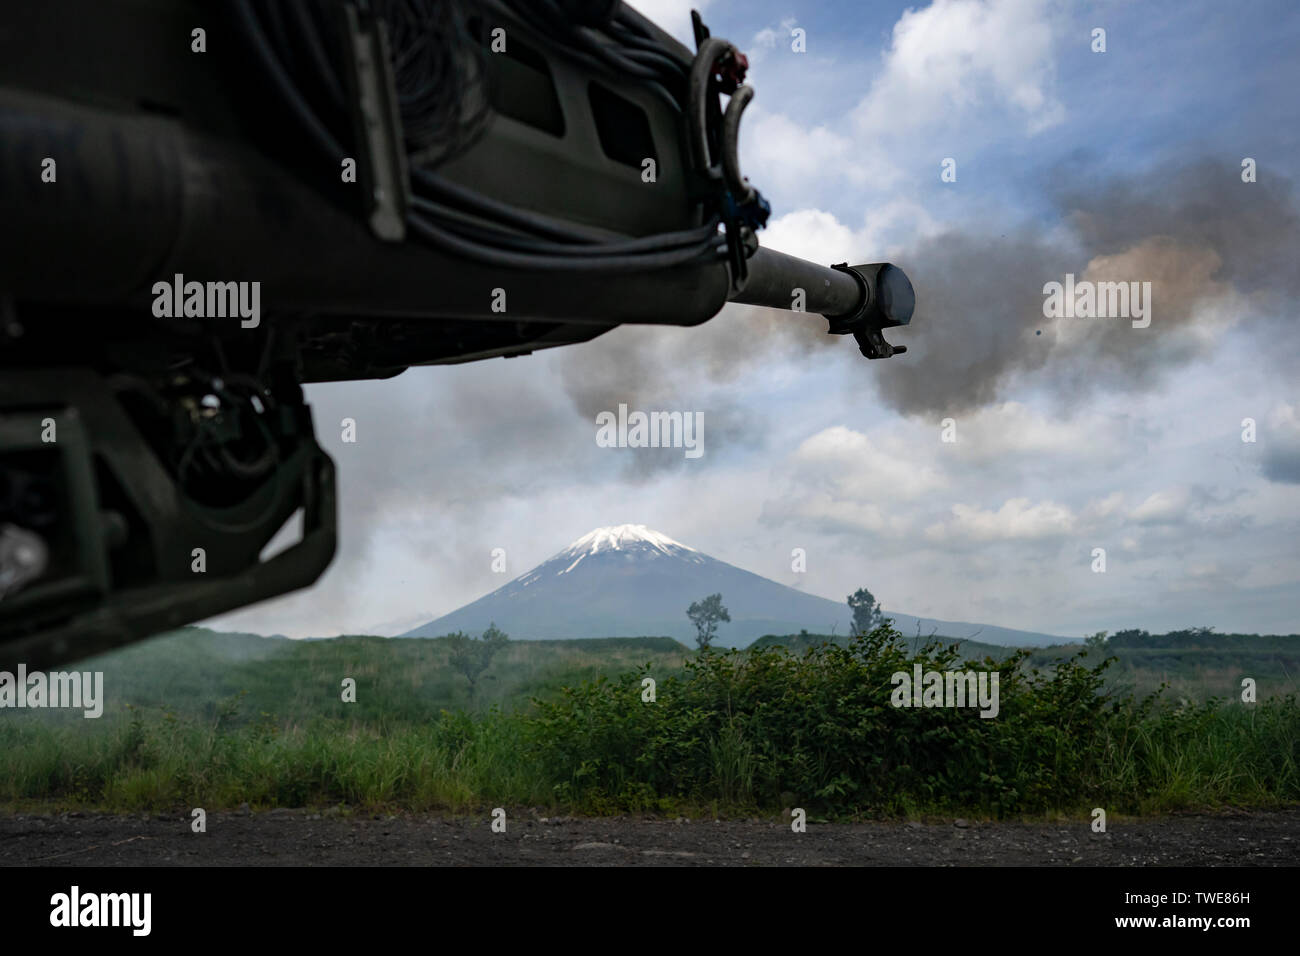 U.S. Marines with India Battery, 3rd Battalion, 12th Marine Regiment, fire an M777 Howitzer during Exercise Fuji Viper, at Combined Arms Training Center, Camp Fuji, June 14, 2019. The M777 uses a digital fire-control system to provide navigation, pointing and self-location, allowing it to be put into action quickly. (U.S. Marine Corps photo by Cpl. Esgar Rojas) Stock Photo